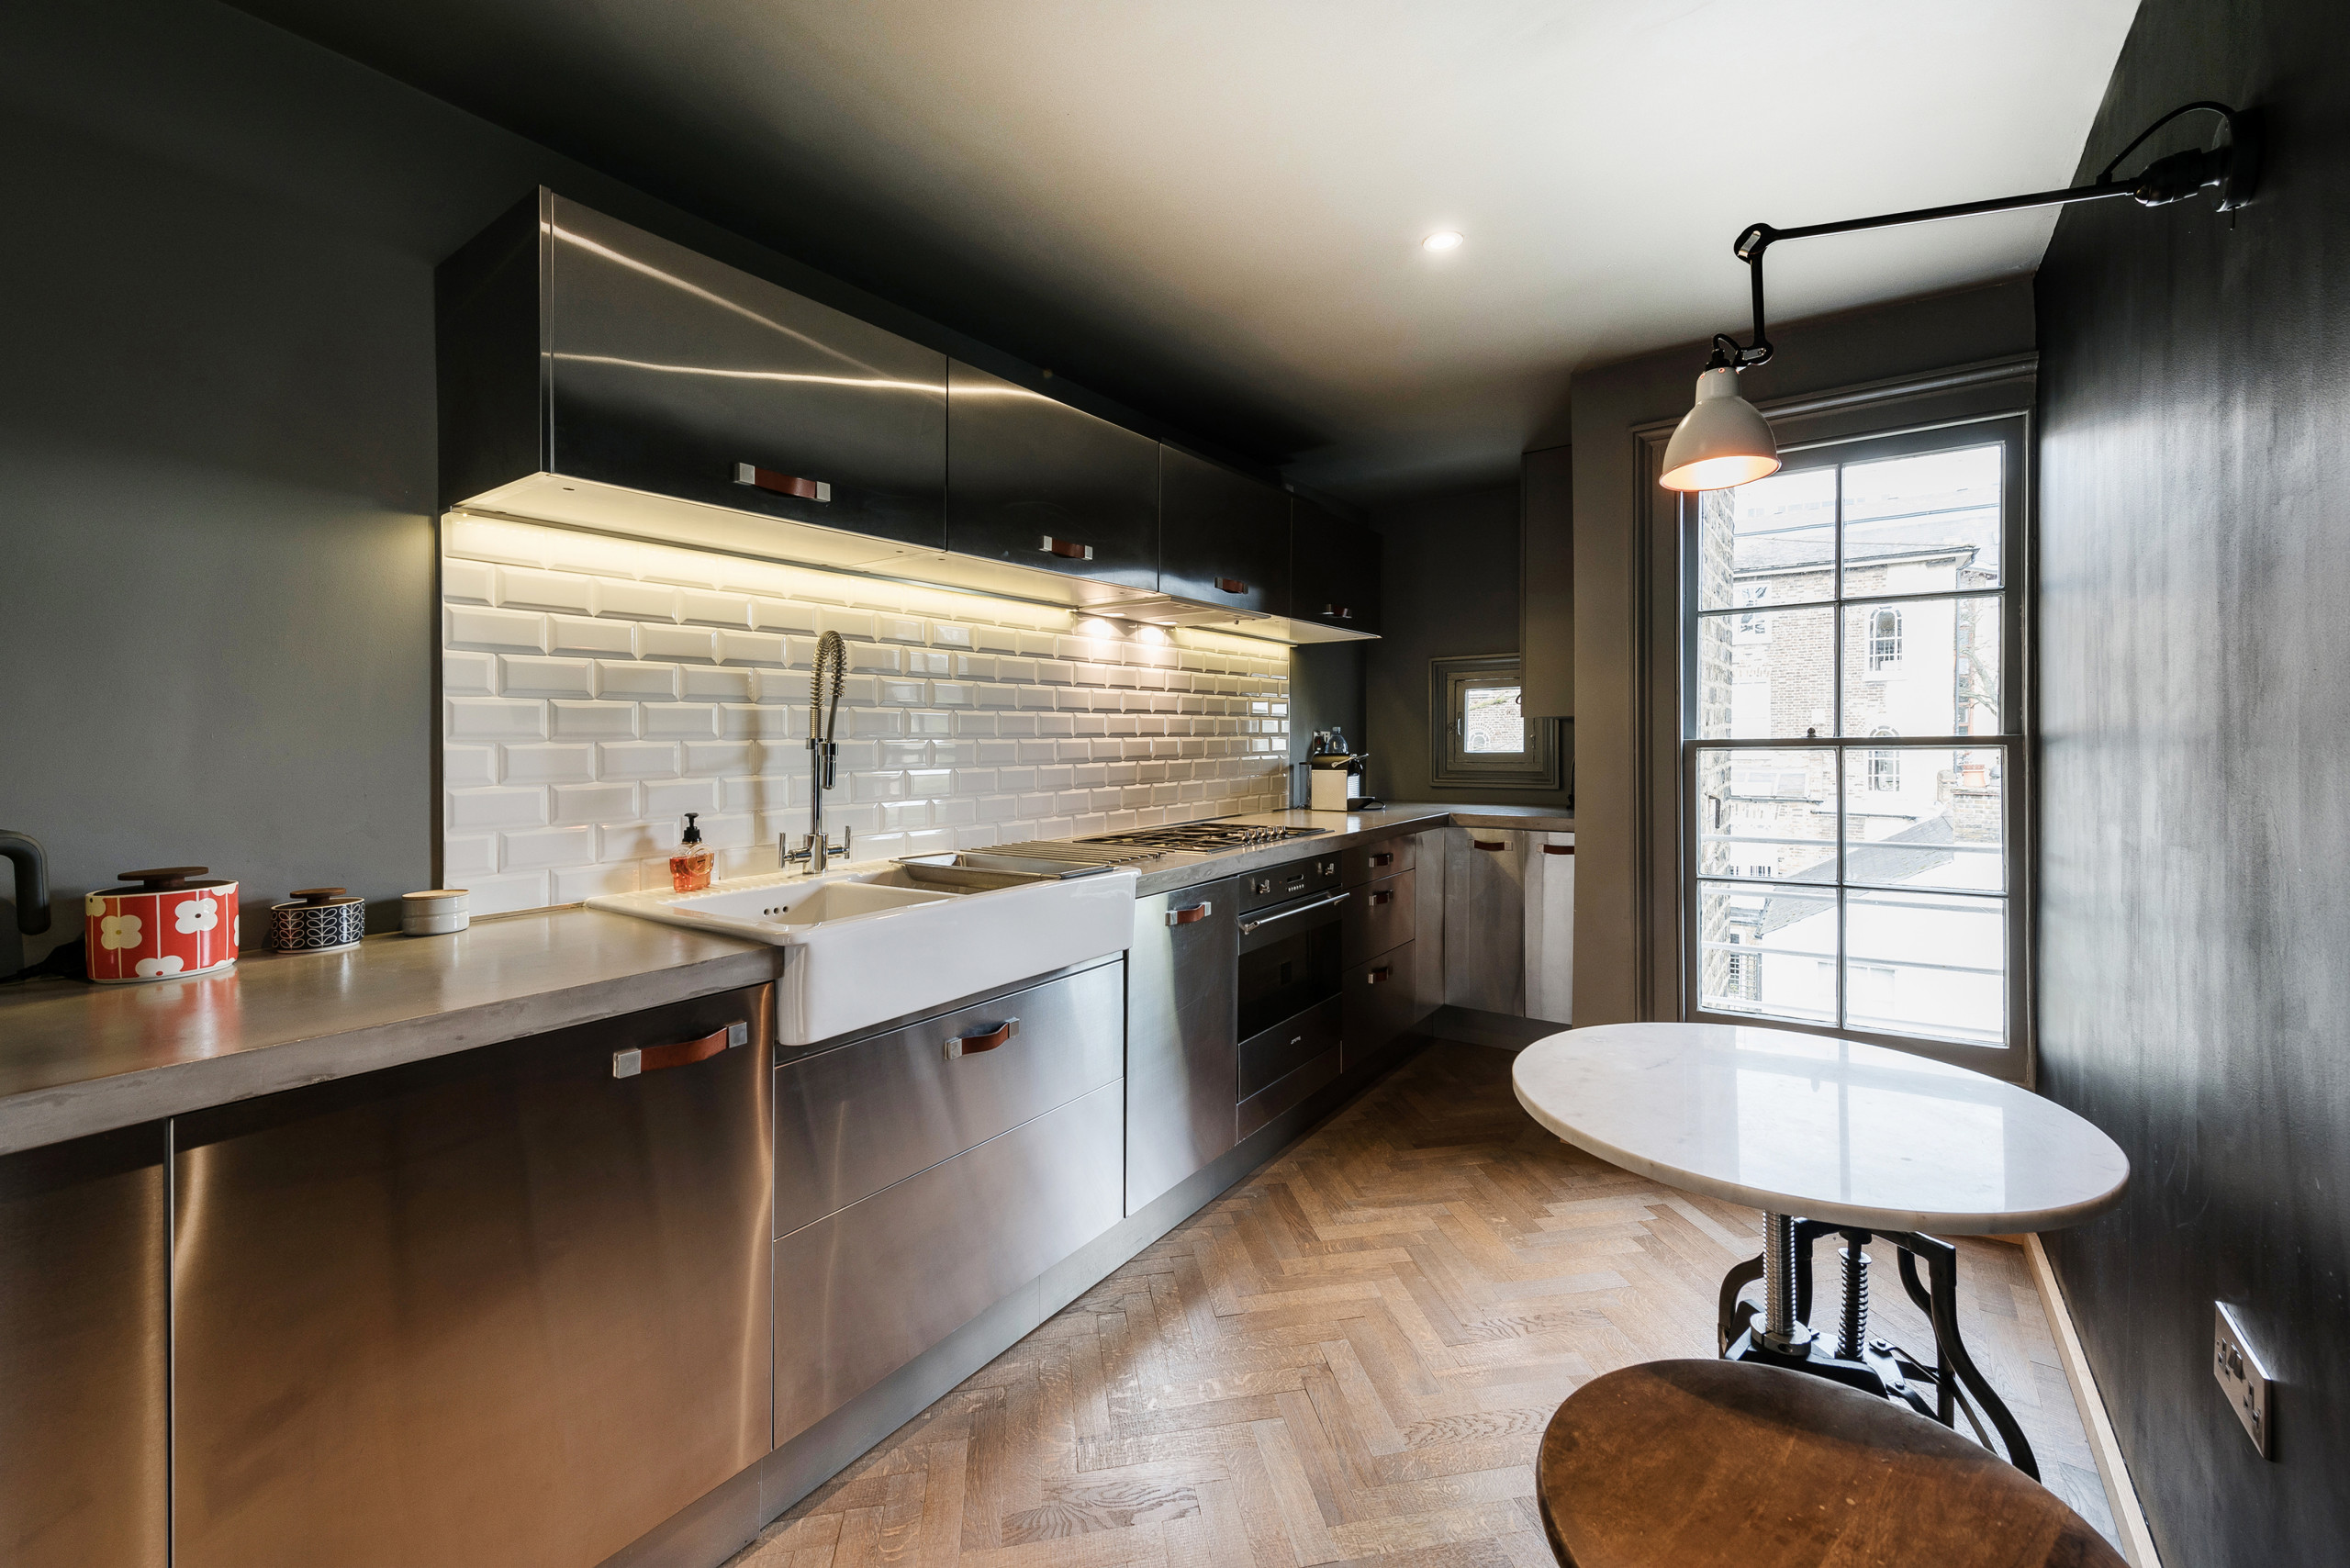 Industrial Kitchen - Cucina in stile industriale